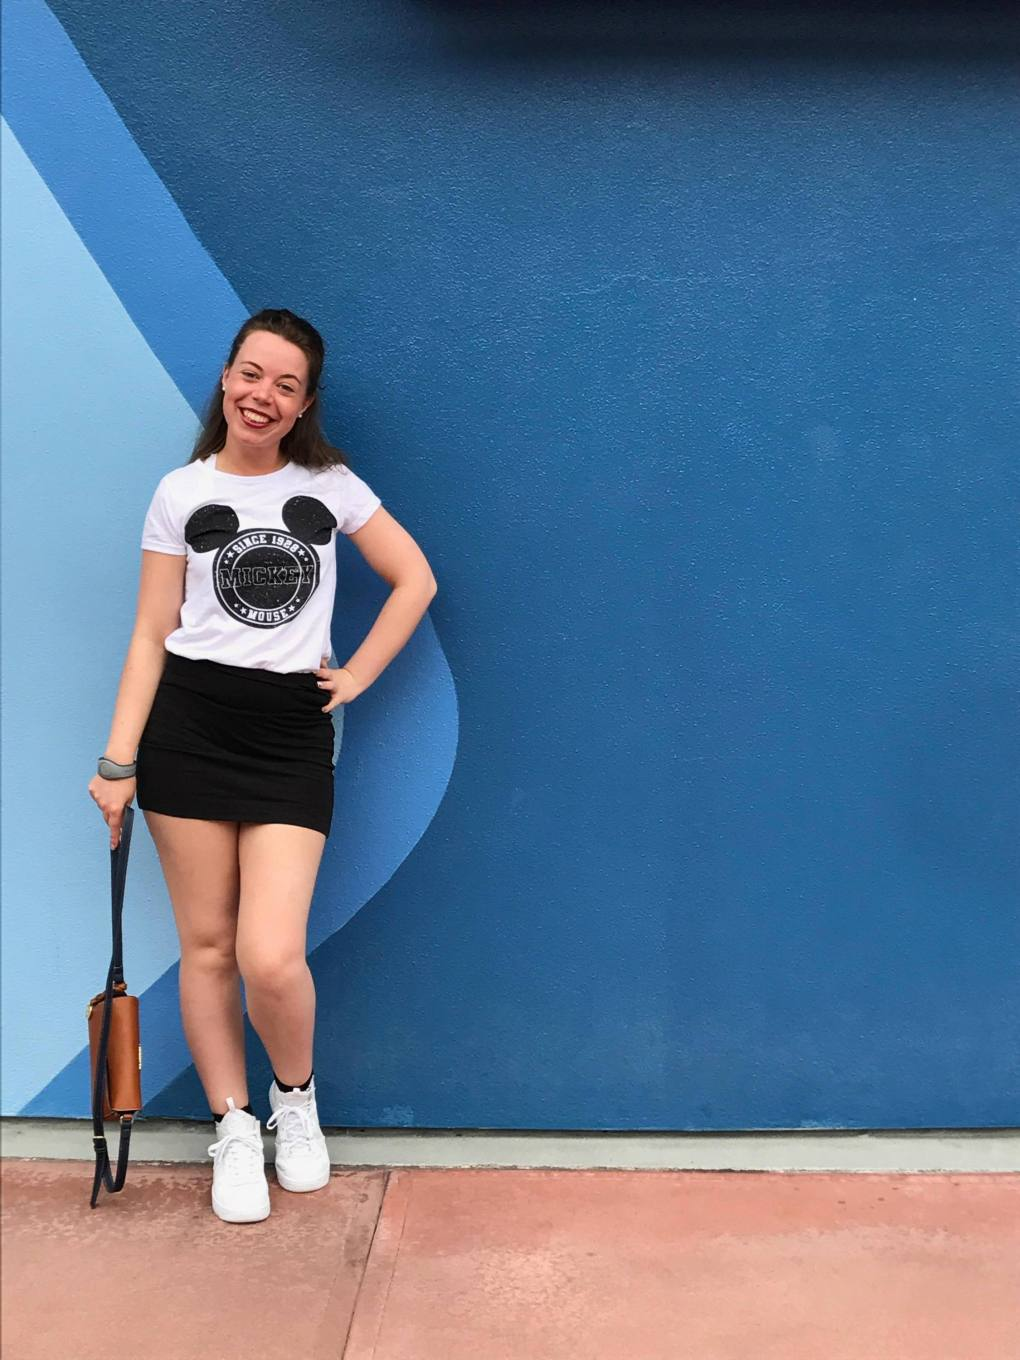 A girl with Mickey mouse t-shirt and black skirt in front of a blue wave patterned wall